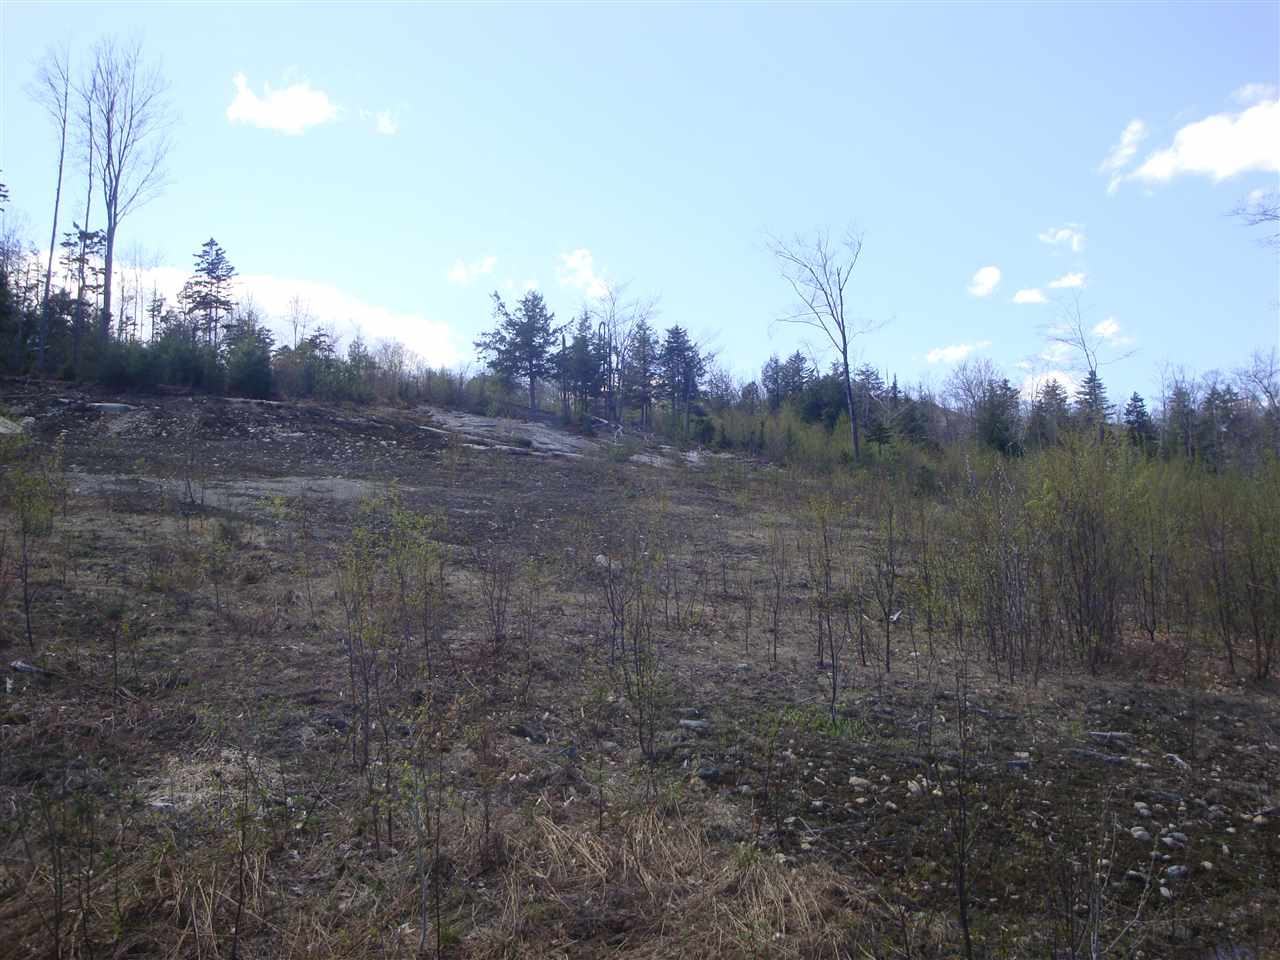 MLS 4805486: Lot 7 Old Fields Road, Groton NH